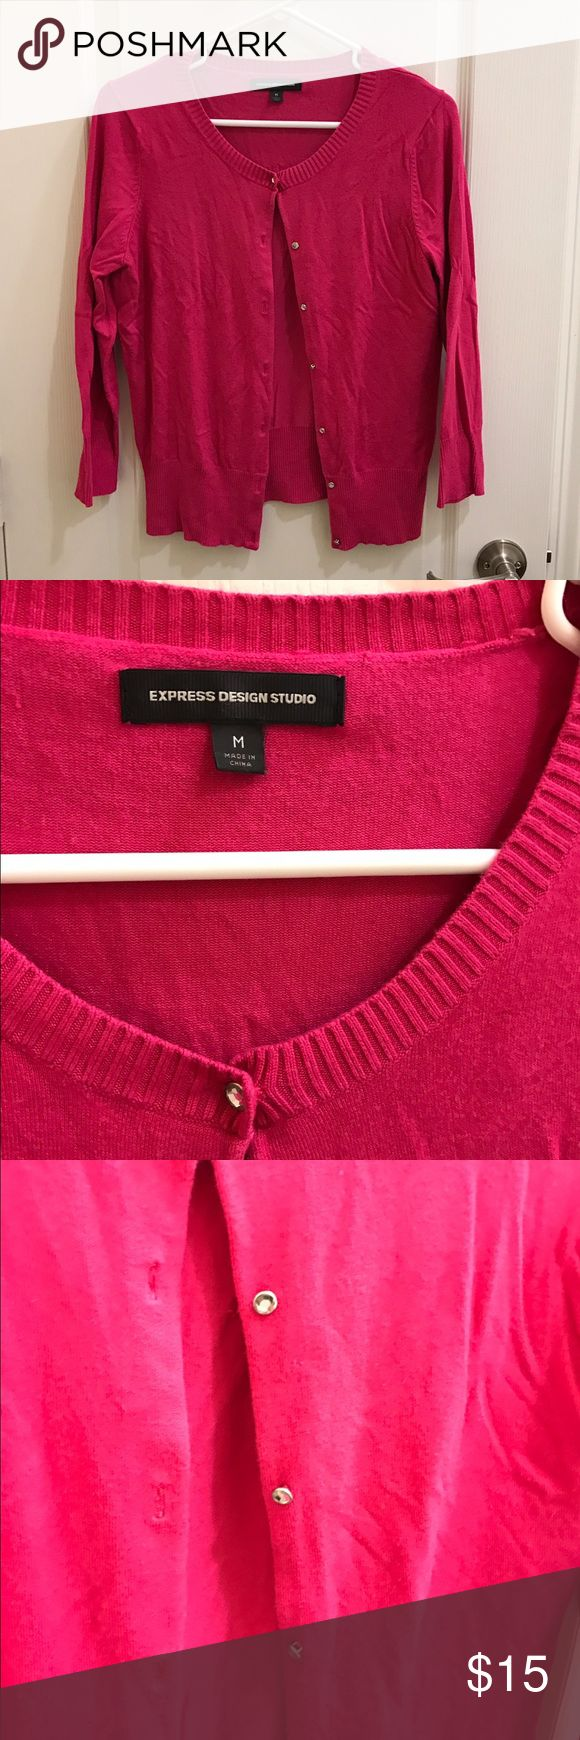 Express Bright Pink Cardigan Sweater Express Bright Pink Cardigan Sweater with rhinestone buttons. Size M. Good condition! Express Sweaters Cardigans